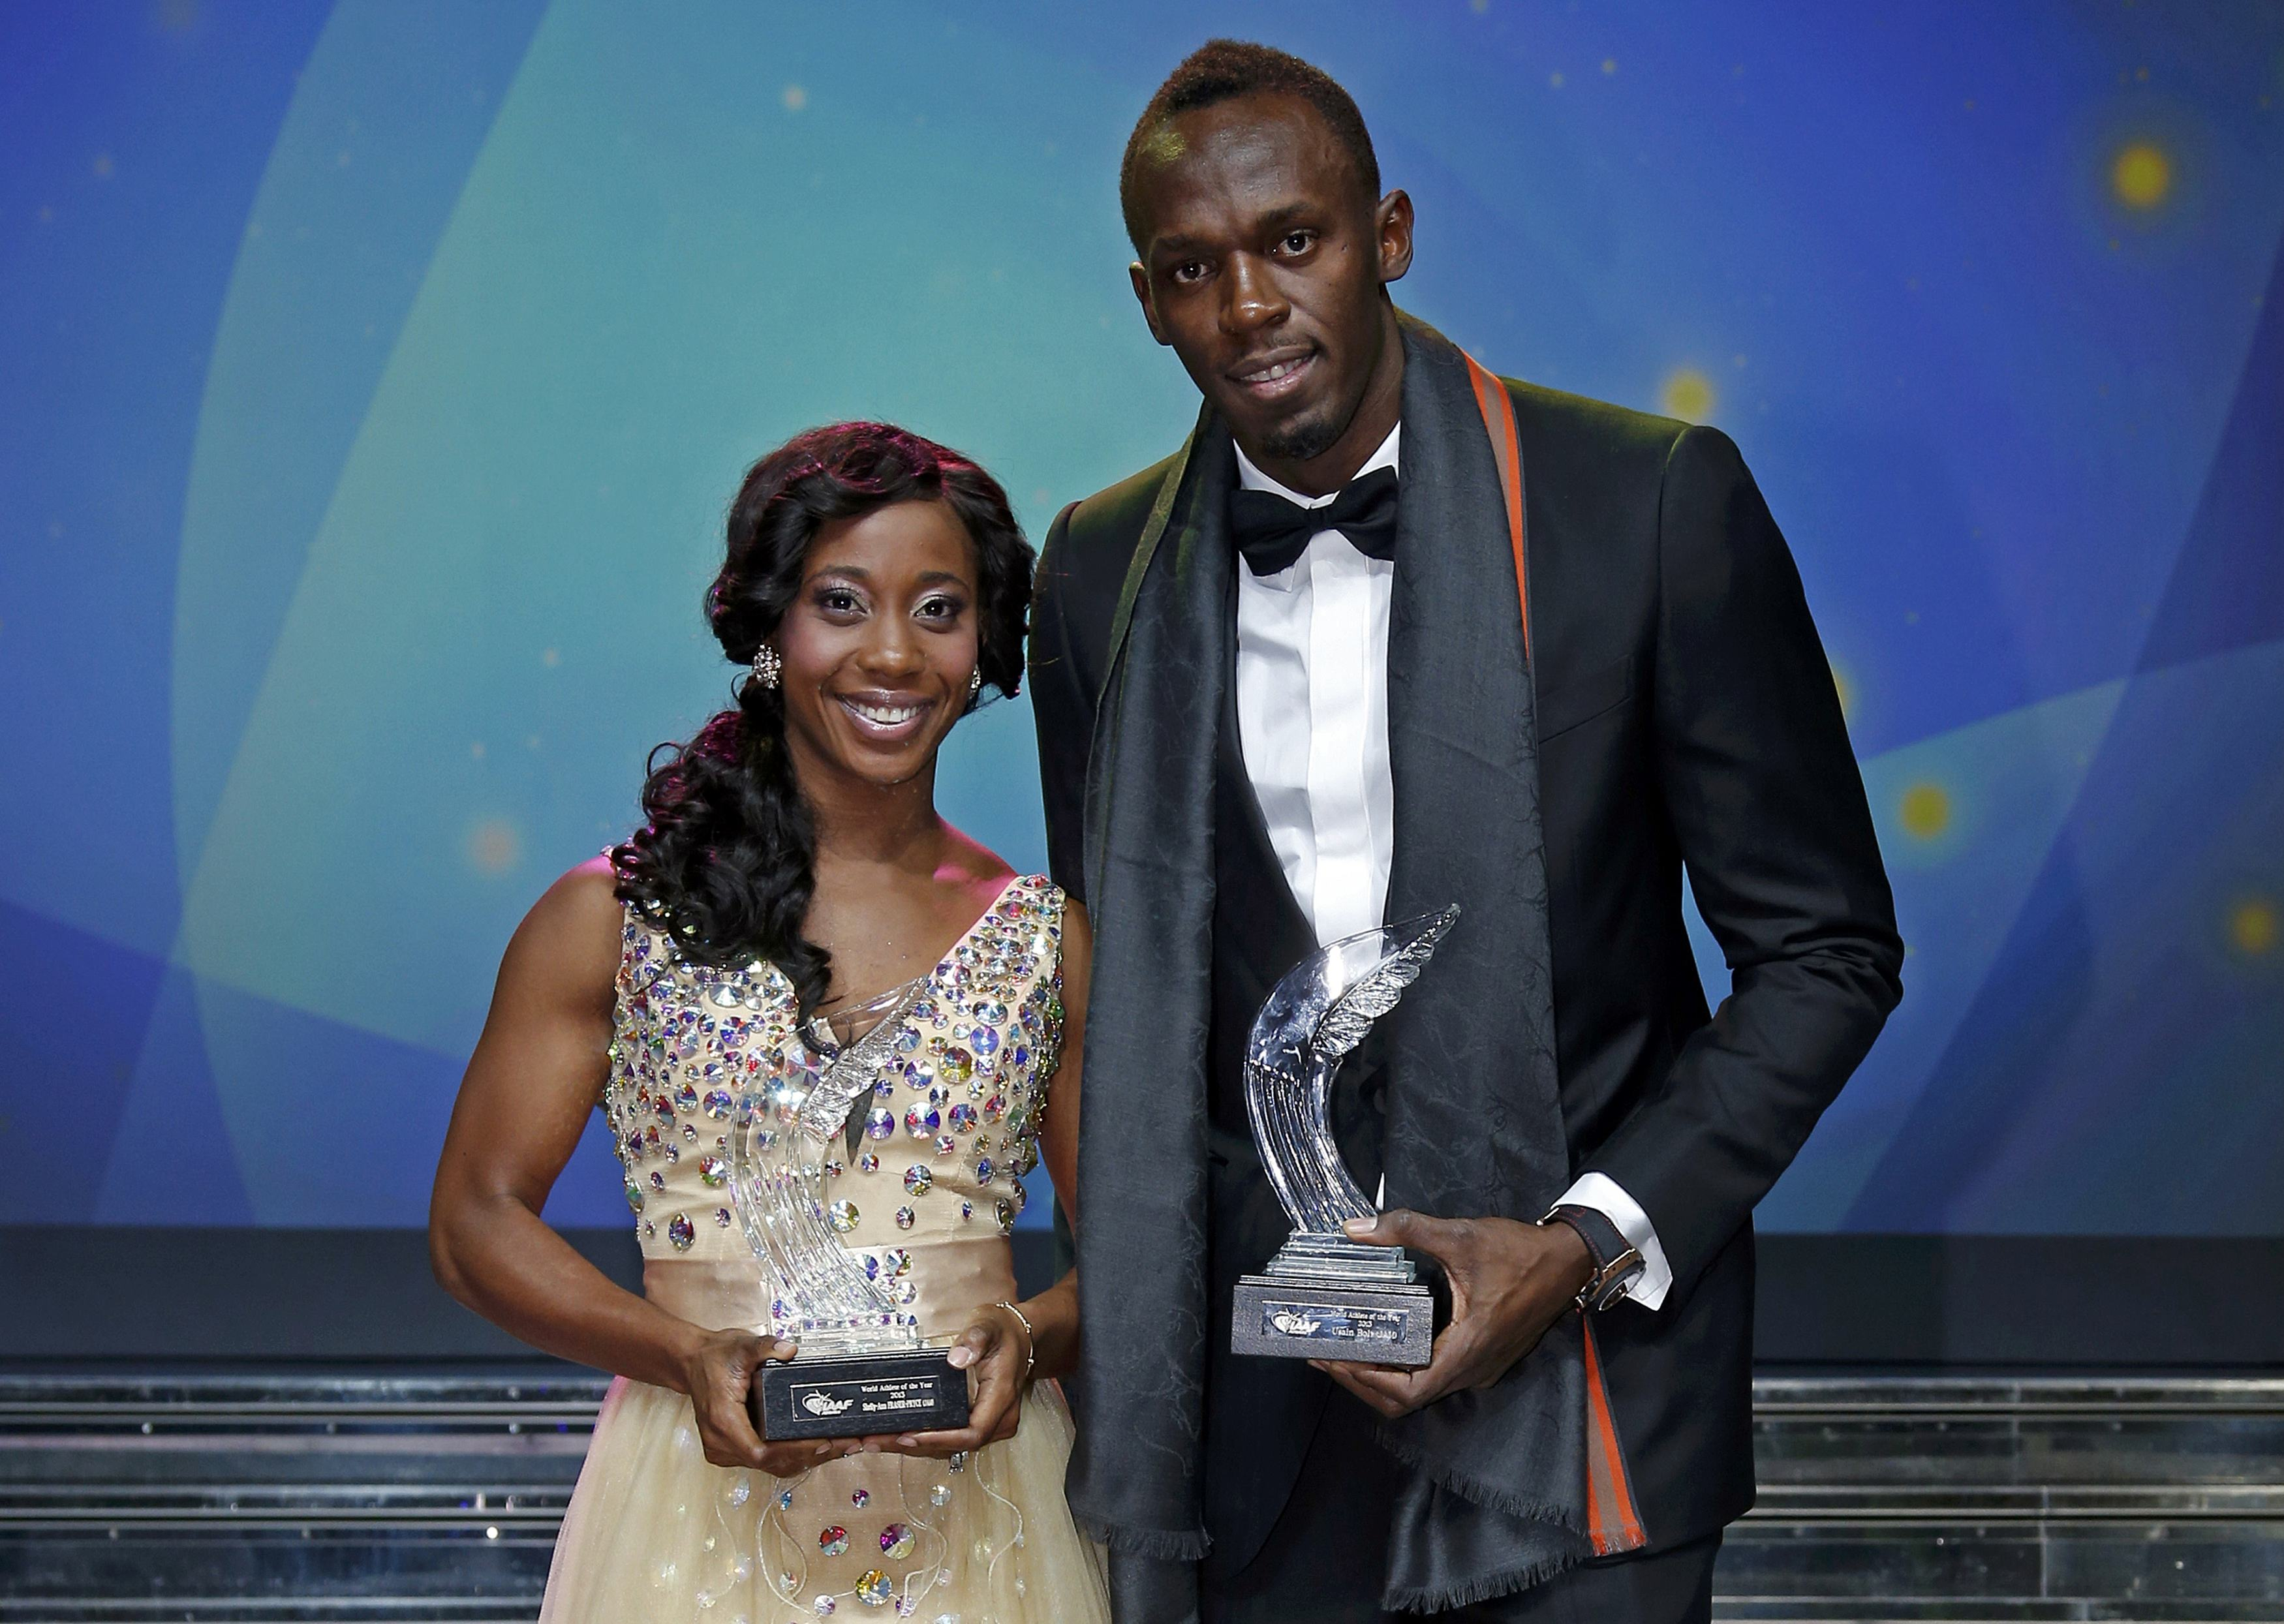 Usain Bolt and Shelly-Ann Fraser-Pryce of Jamaica pose after receiving their World Athlete of the Year awards during the IAAF World Athletics Gala in Monte Carlo